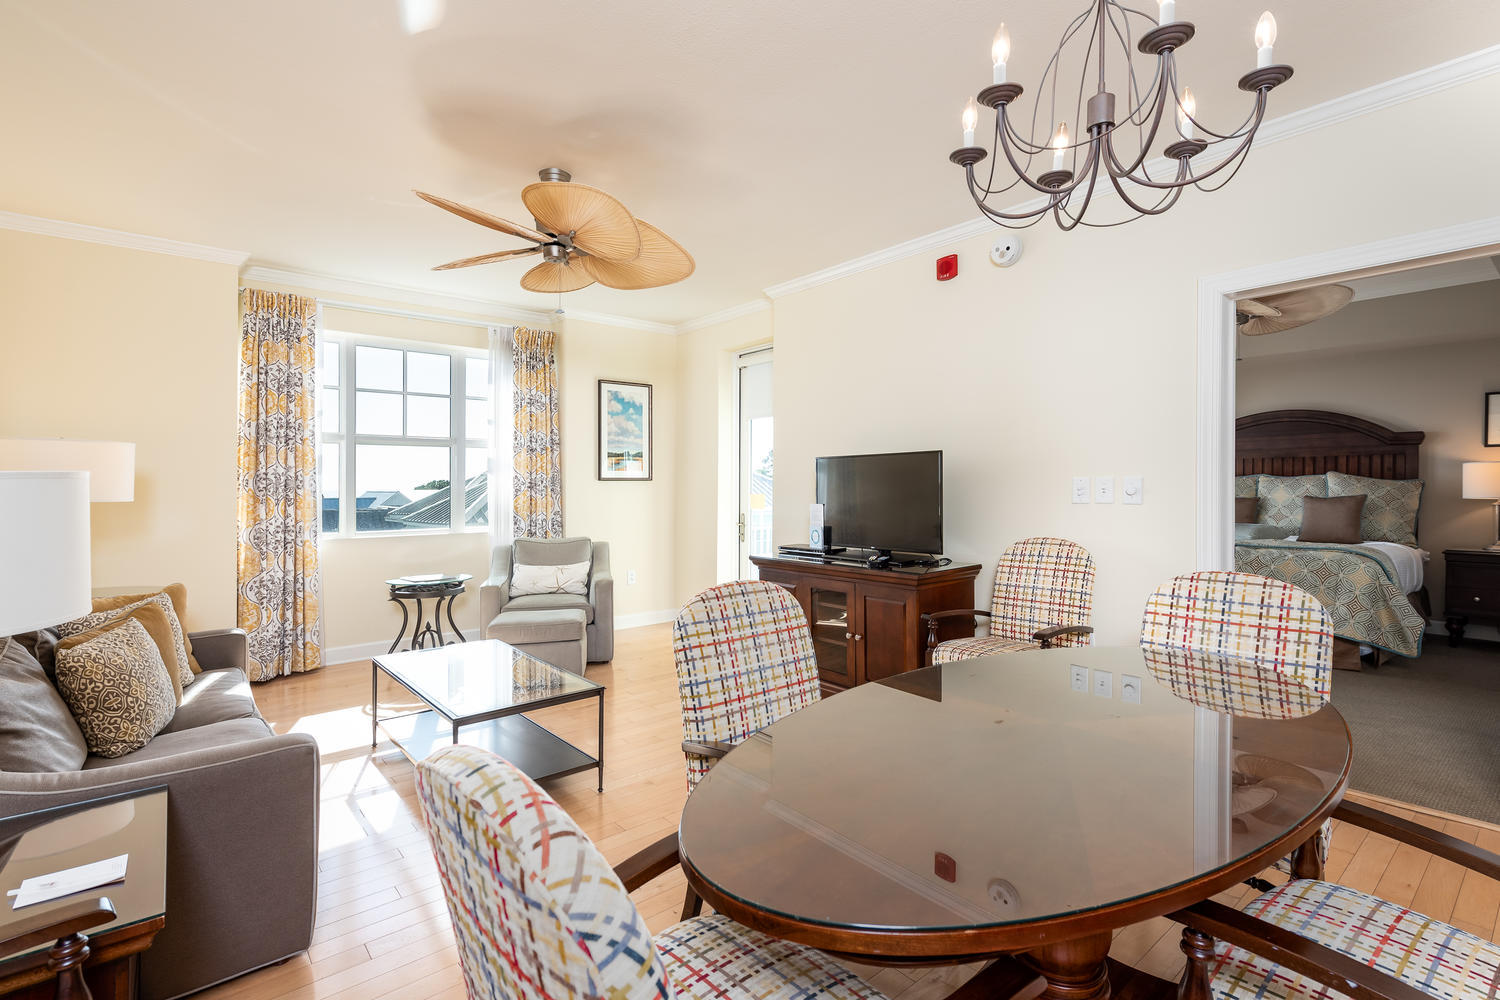 Wild Dunes Homes For Sale - 405/407 B Village At Wild Dunes, Isle of Palms, SC - 25